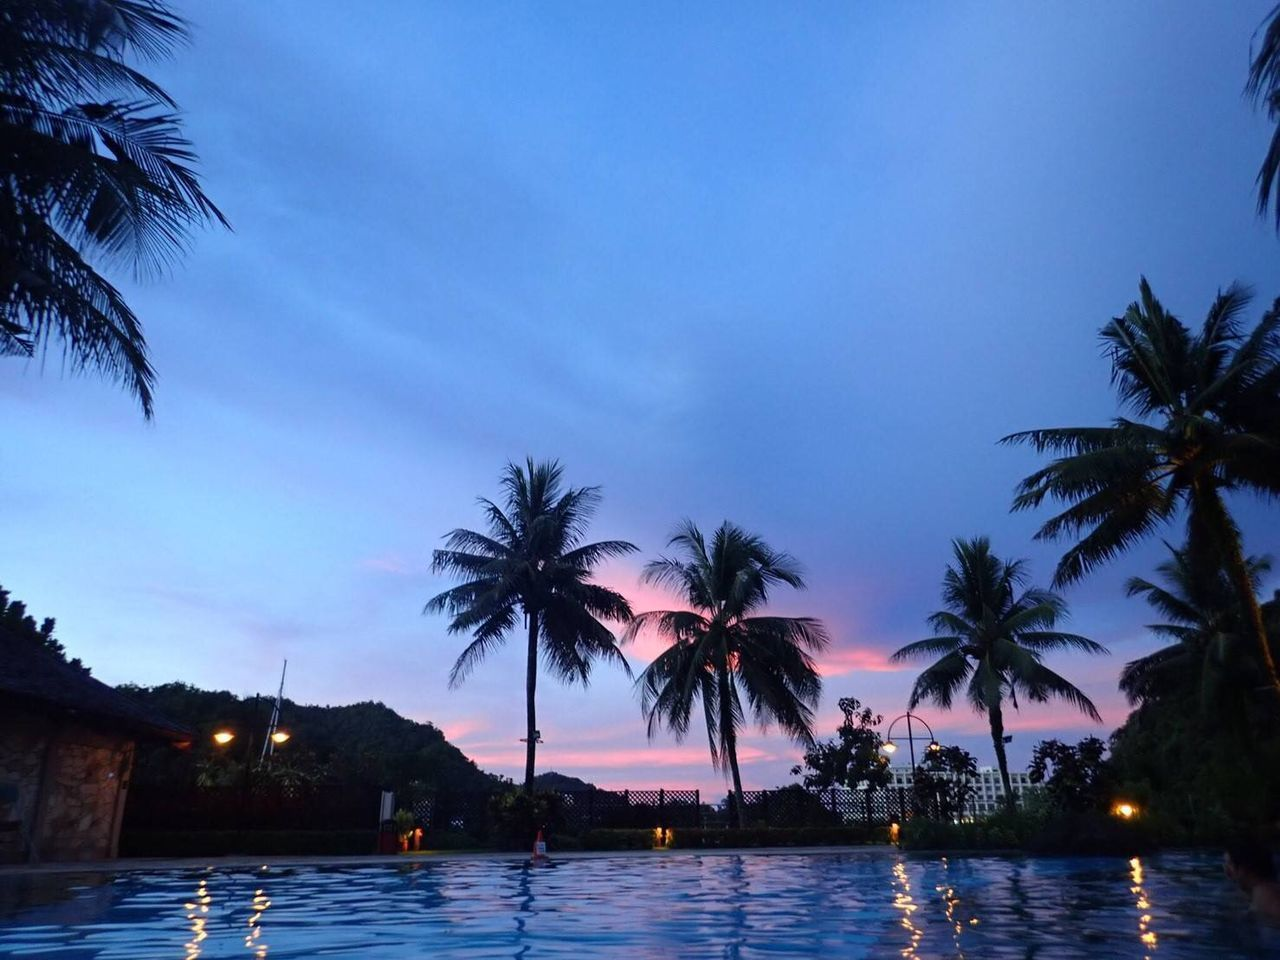 tree, palm tree, water, tropical climate, sky, plant, illuminated, nature, no people, dusk, cloud - sky, sea, beauty in nature, pool, scenics - nature, tranquil scene, sunset, architecture, swimming pool, outdoors, coconut palm tree, tropical tree